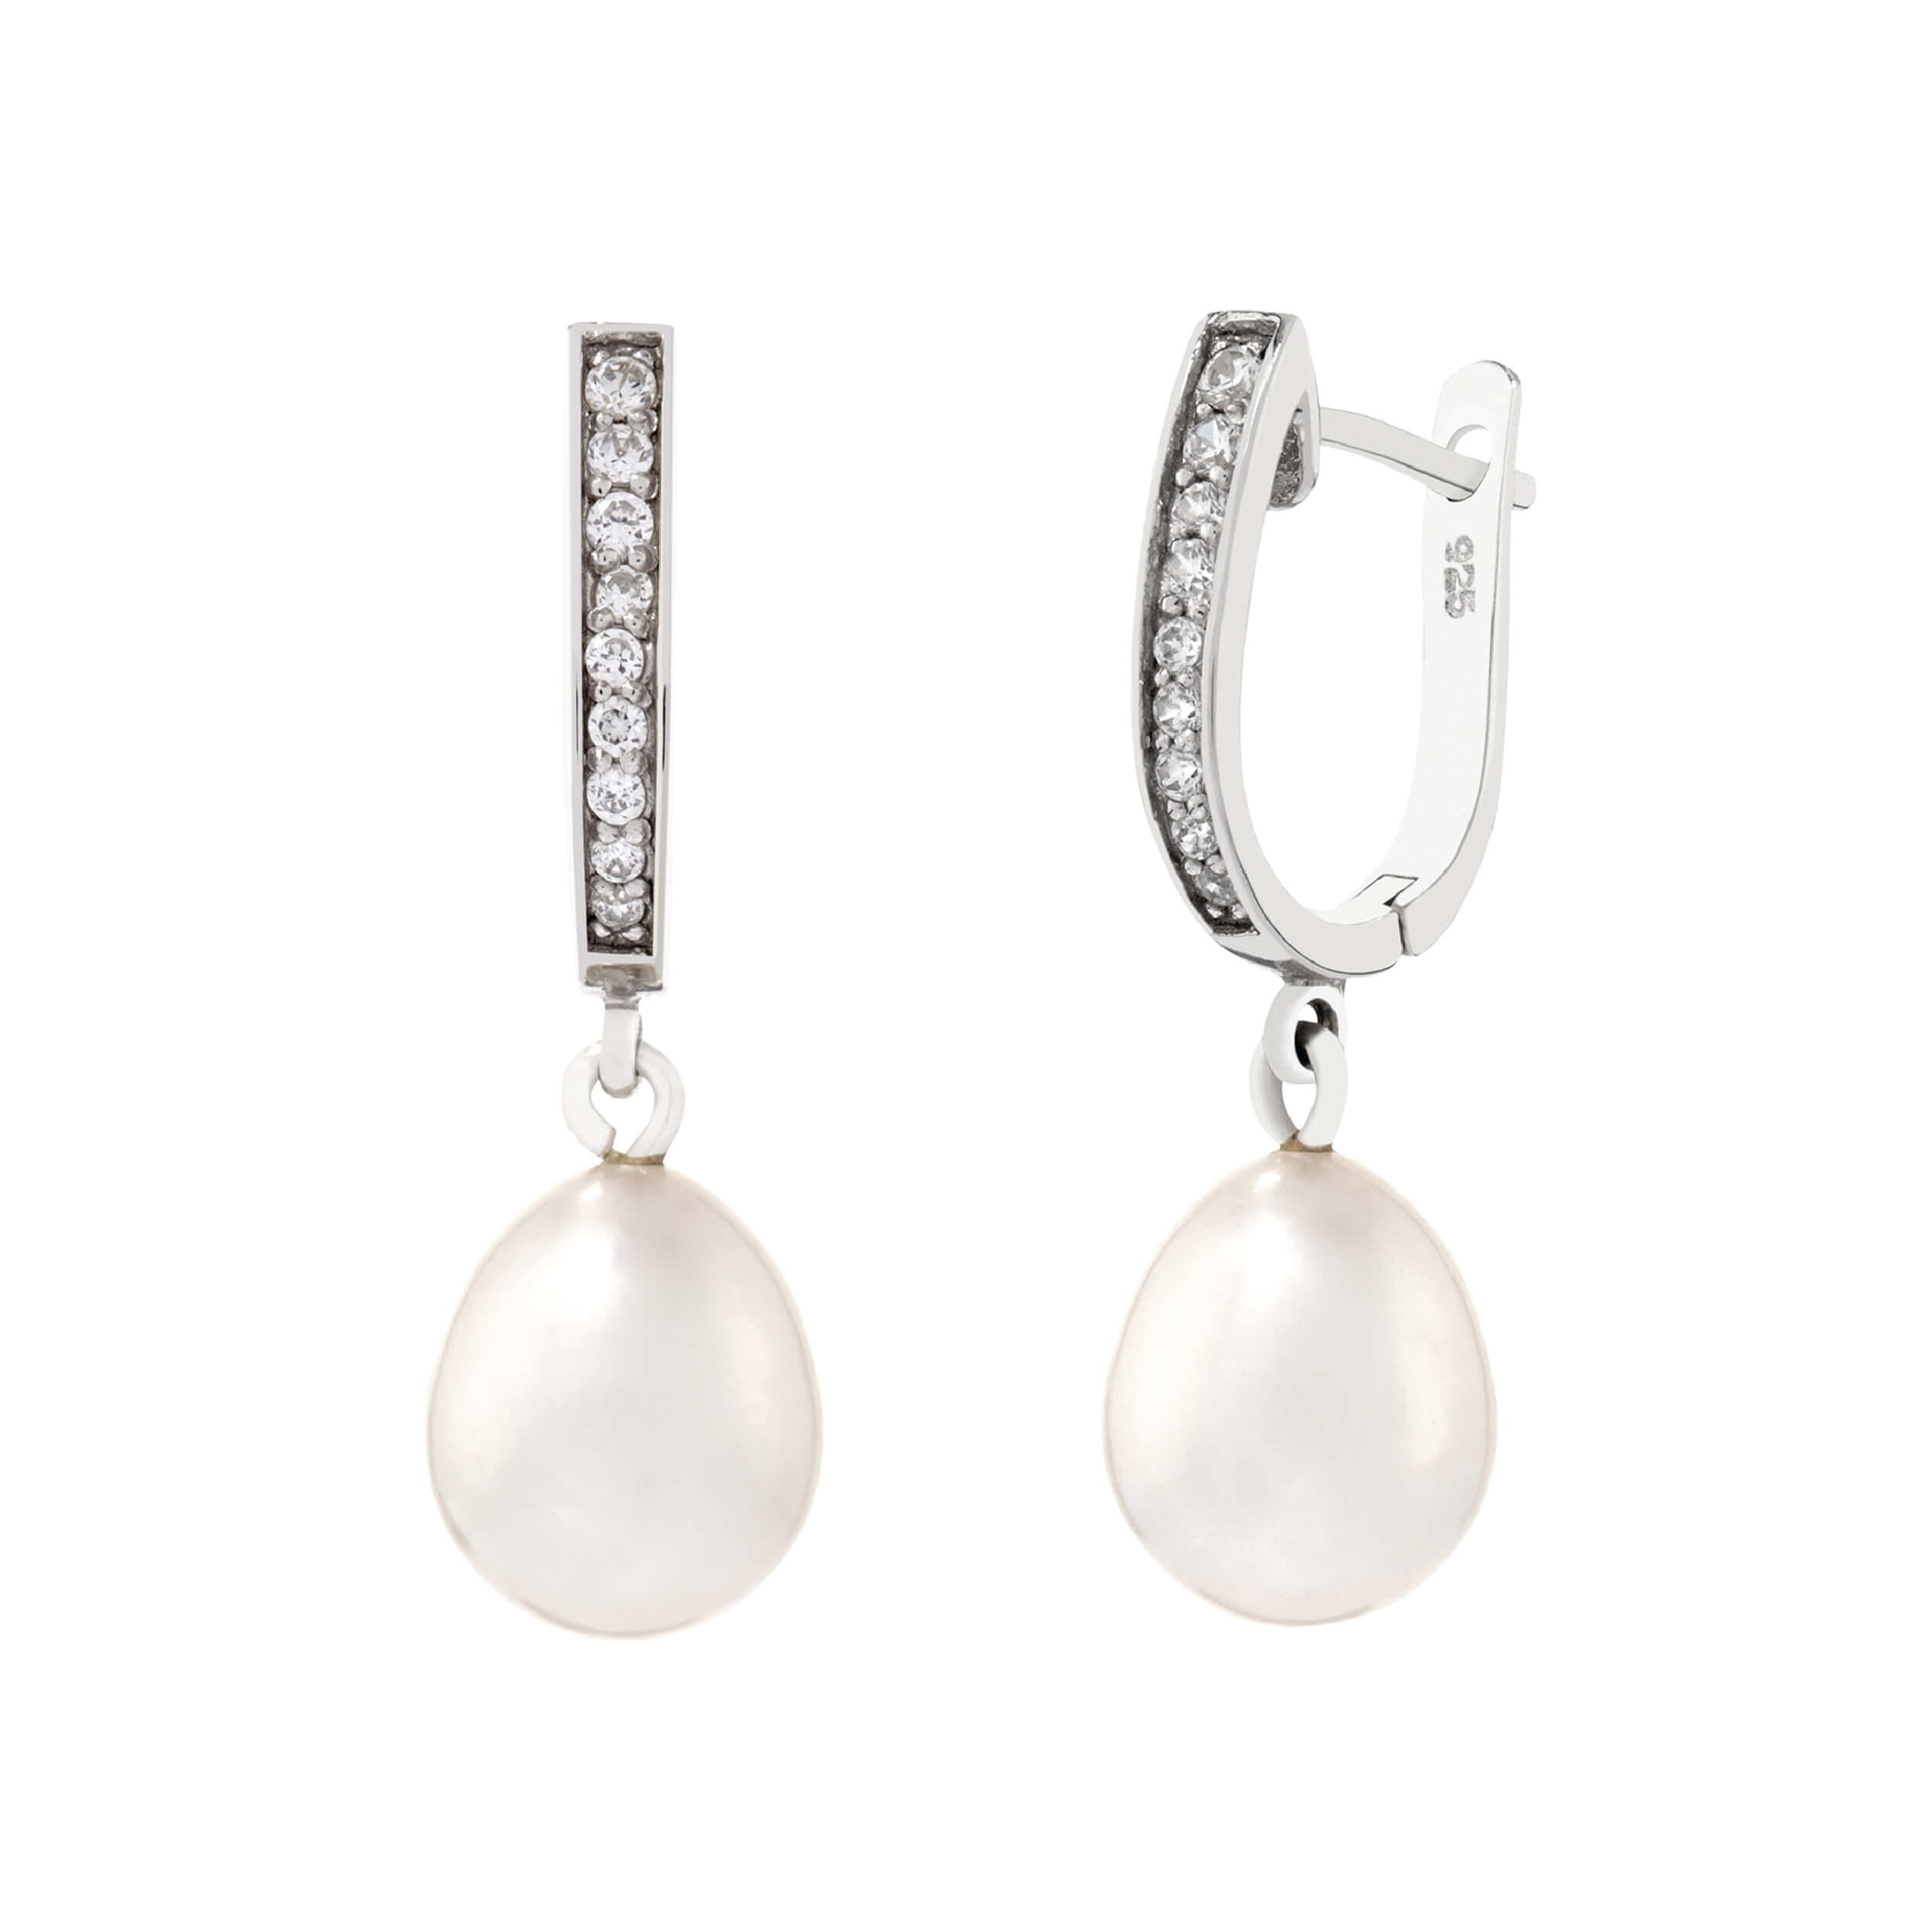 Pearl Earrings by Bijoux Jewels